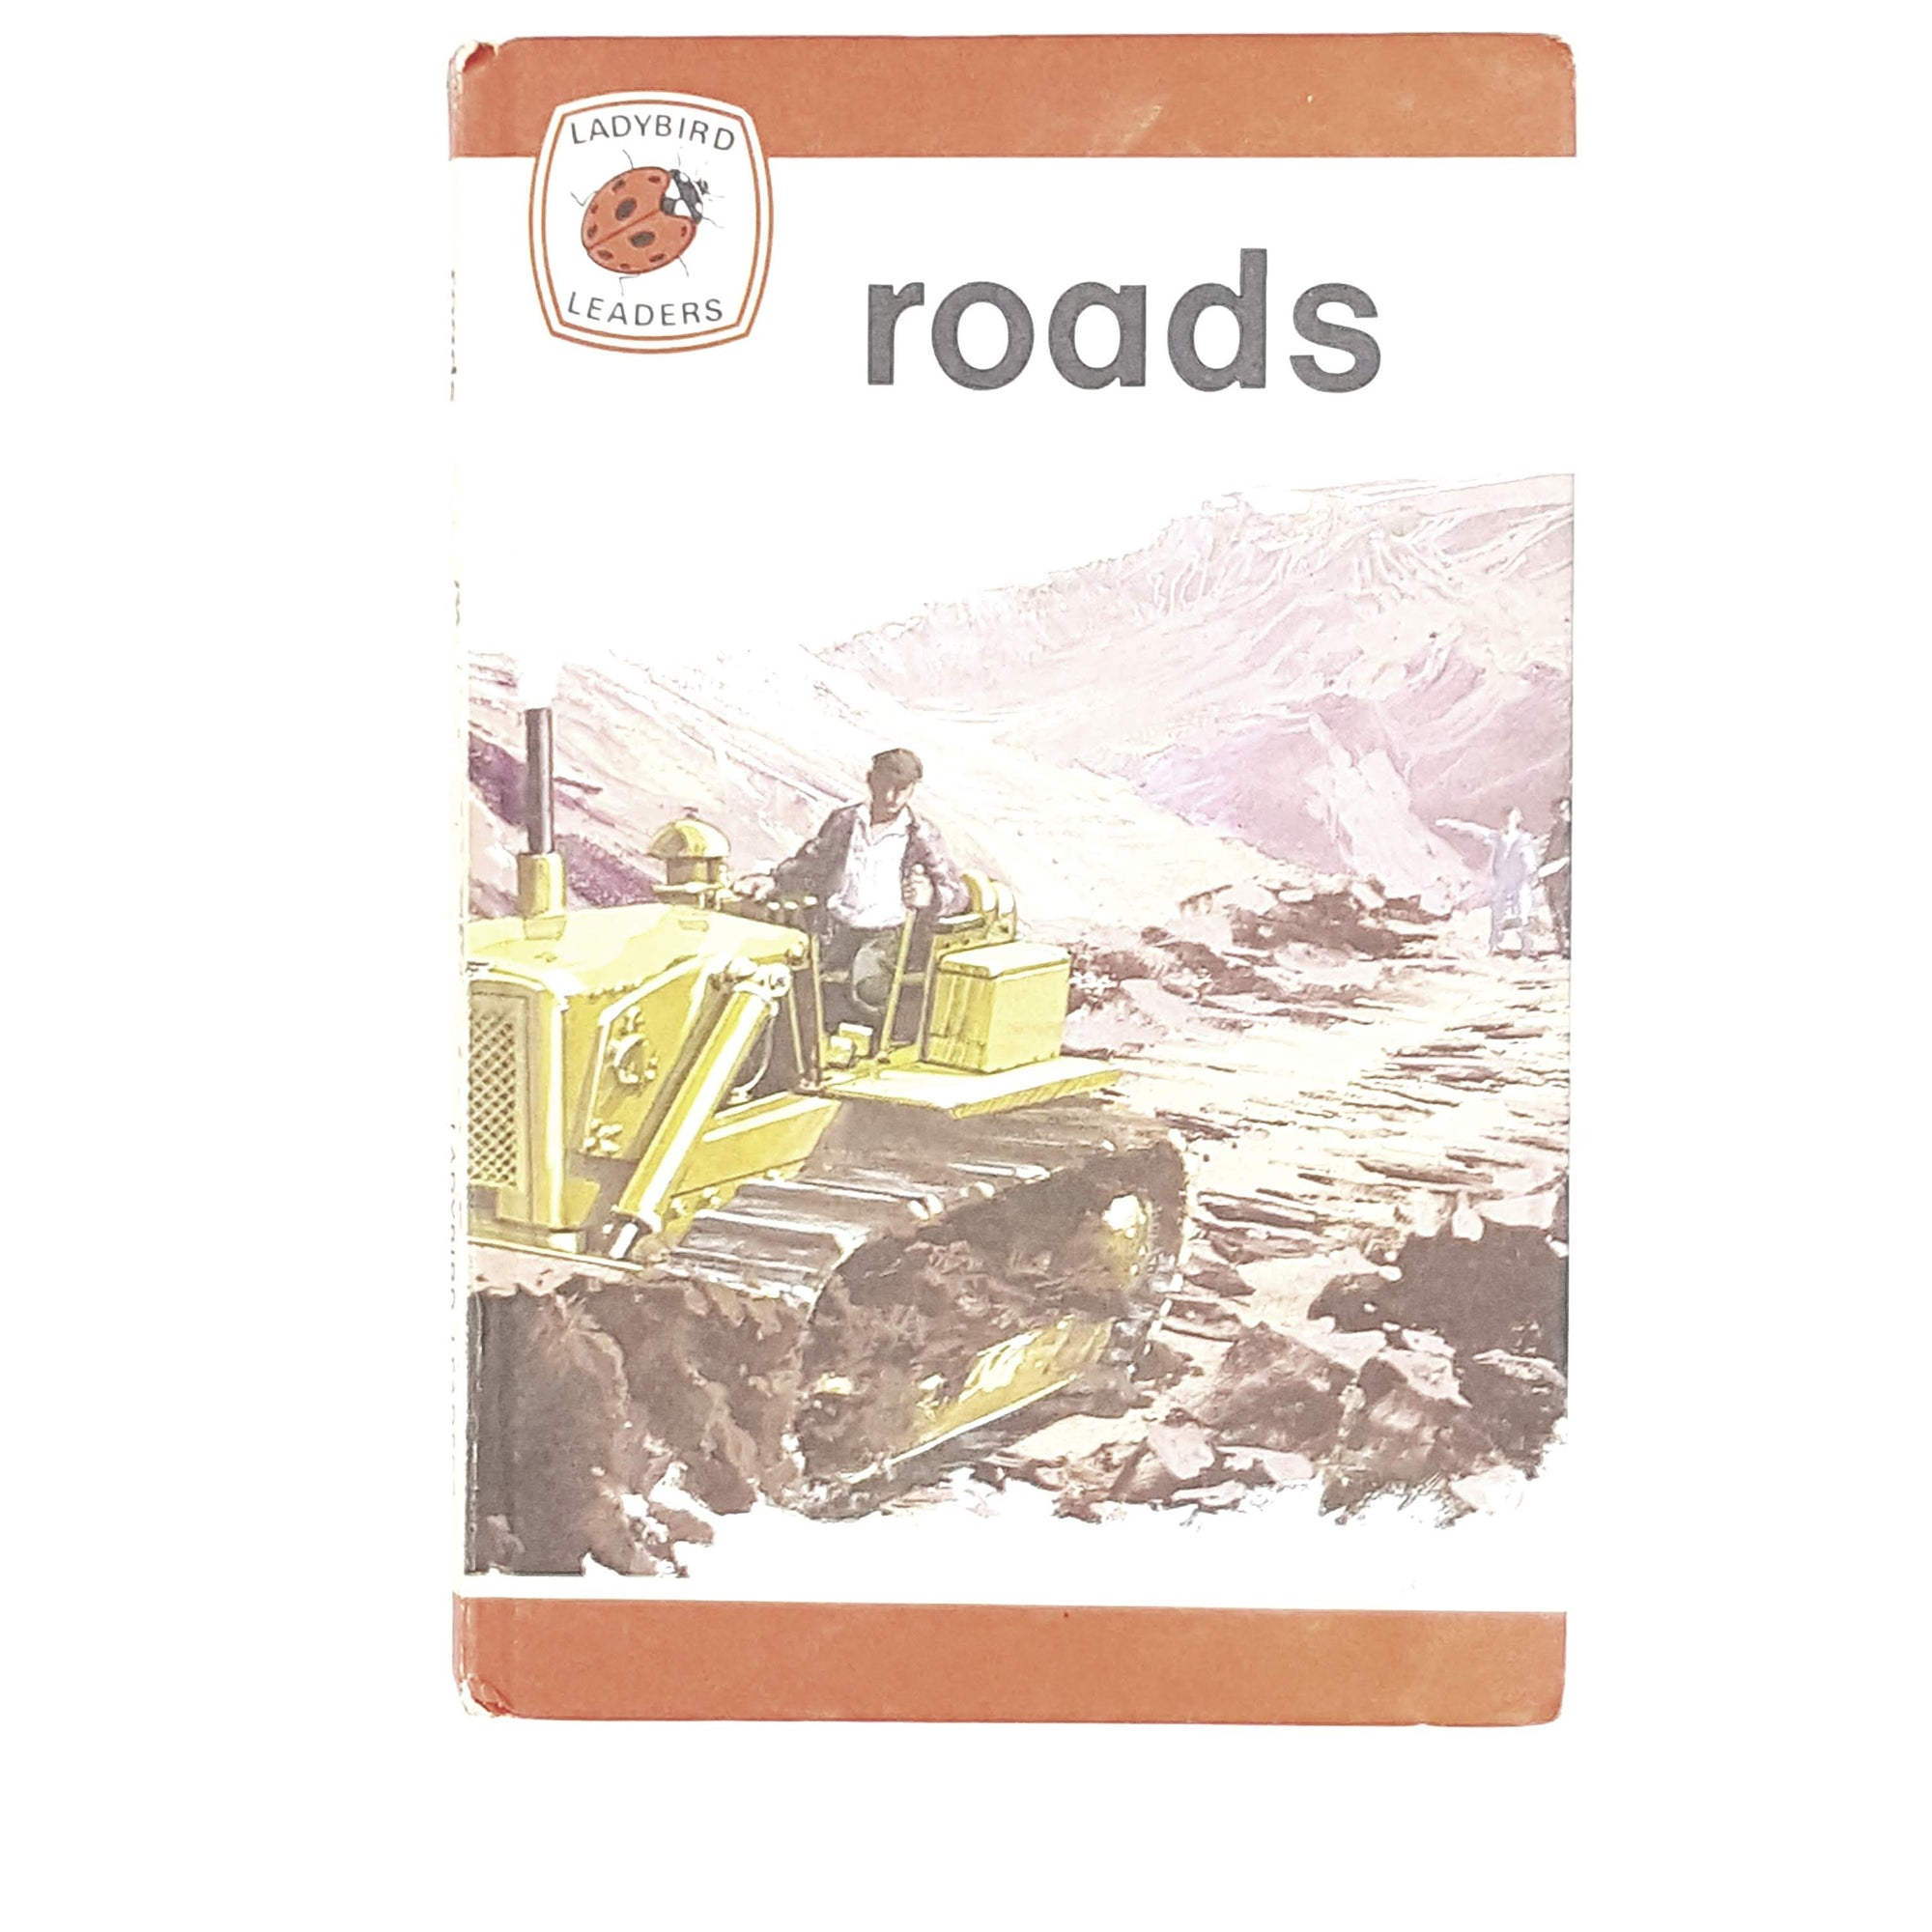 ladybird-leaders-roads-1974-country-house-library